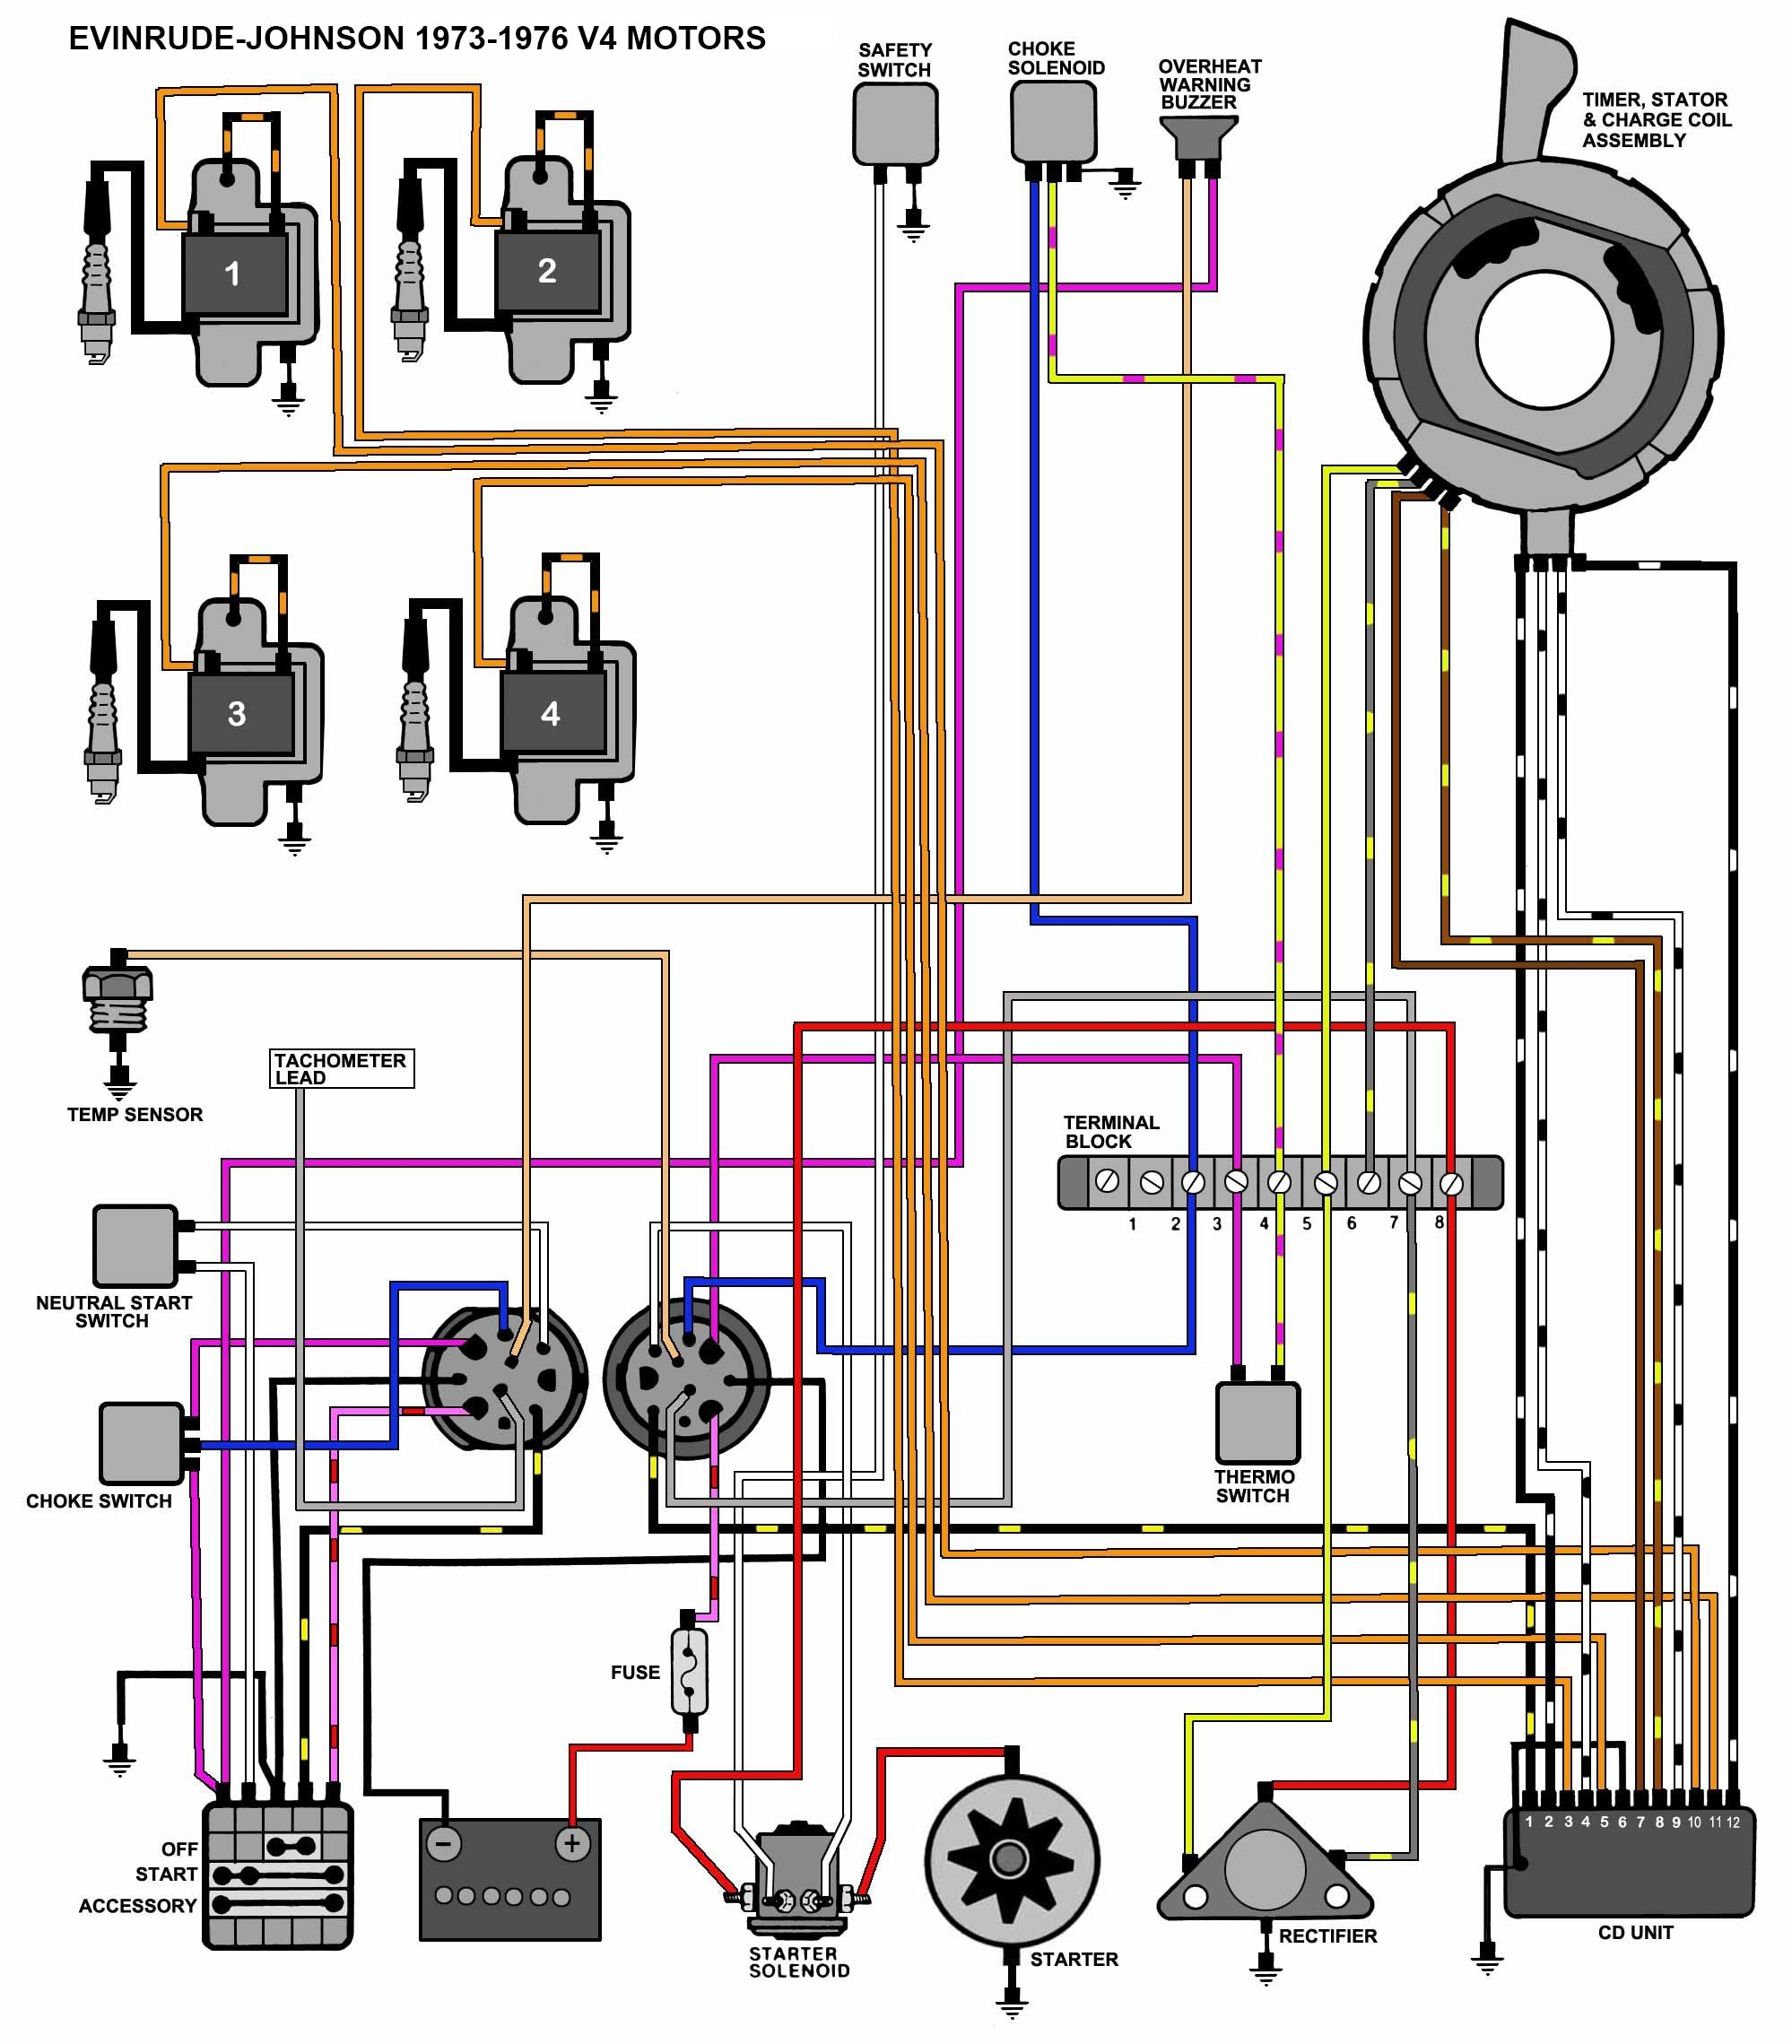 evinrude ignition switch wiring diagram with 1969 omc 55 wiring throughout 70 hp evinrude wiring diagram?resize\\\\\\\\\\\\\\\\\\\\\\\\\\\\\\\=665%2C759\\\\\\\\\\\\\\\\\\\\\\\\\\\\\\\&ssl\\\\\\\\\\\\\\\\\\\\\\\\\\\\\\\=1 1999 70 hp evinrude wiring diagram wiring diagram simonand hp wiring diagram for pavilion at aneh.co